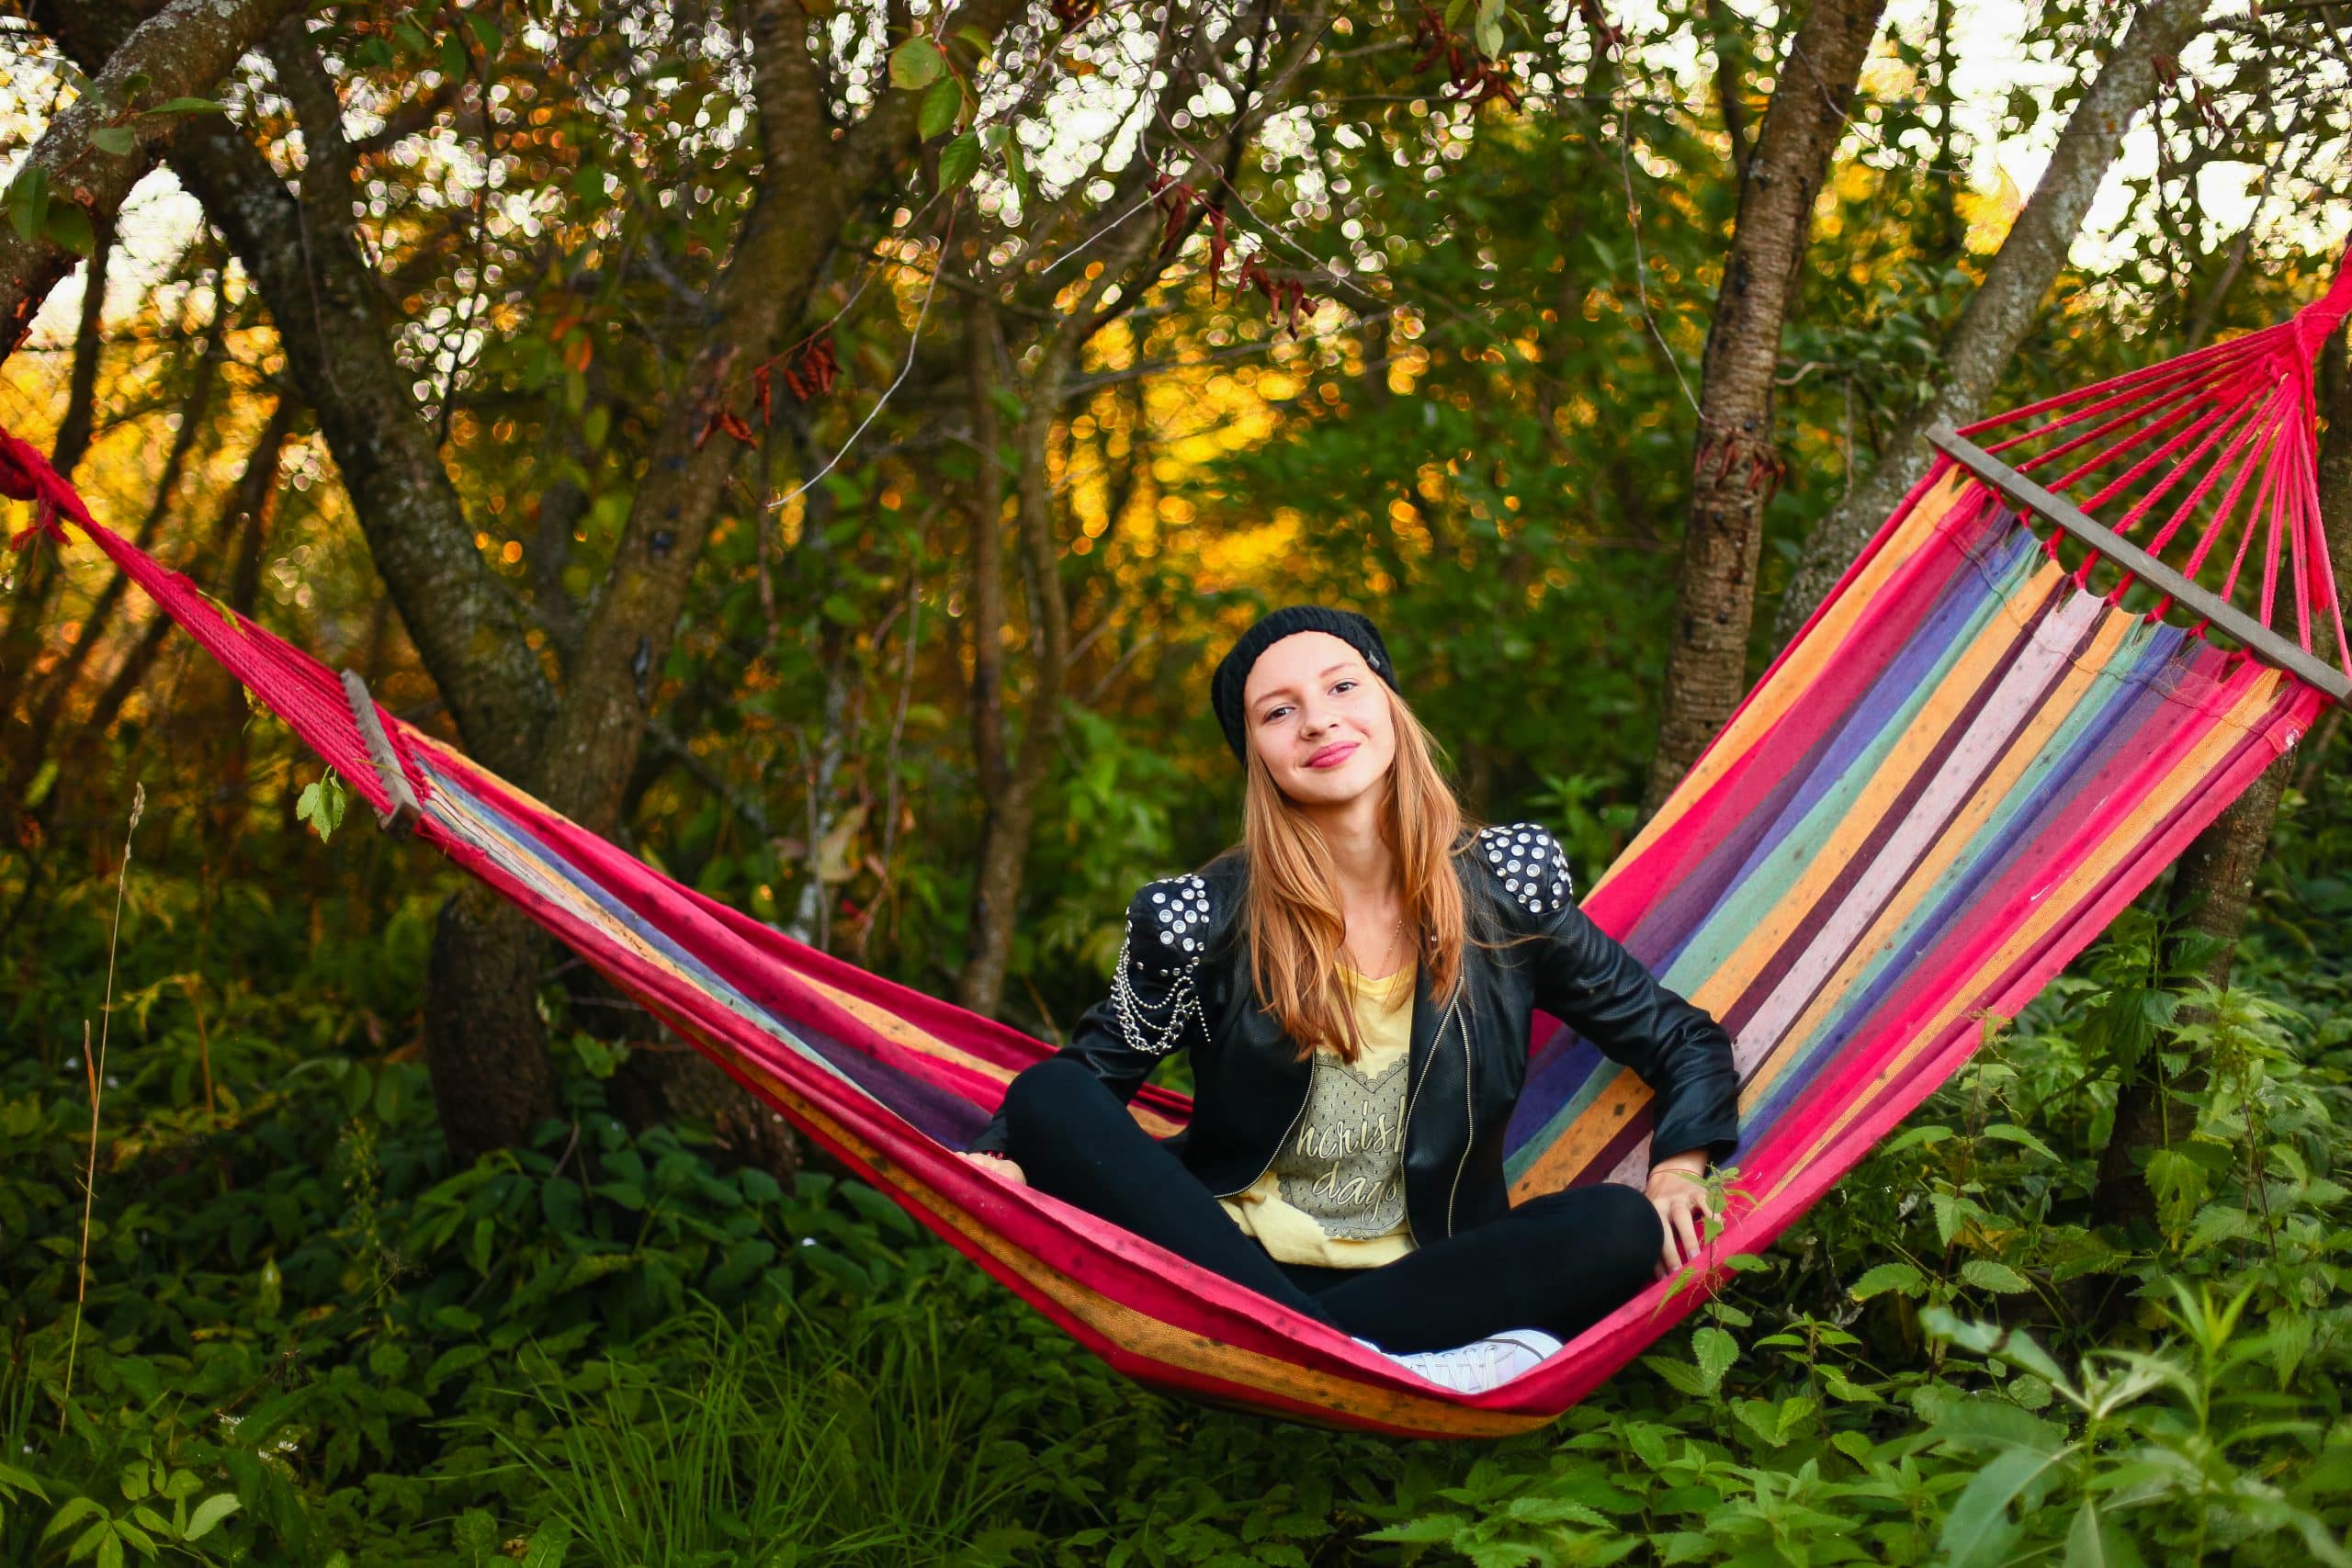 Happy Teengae girl sitting on a hammock